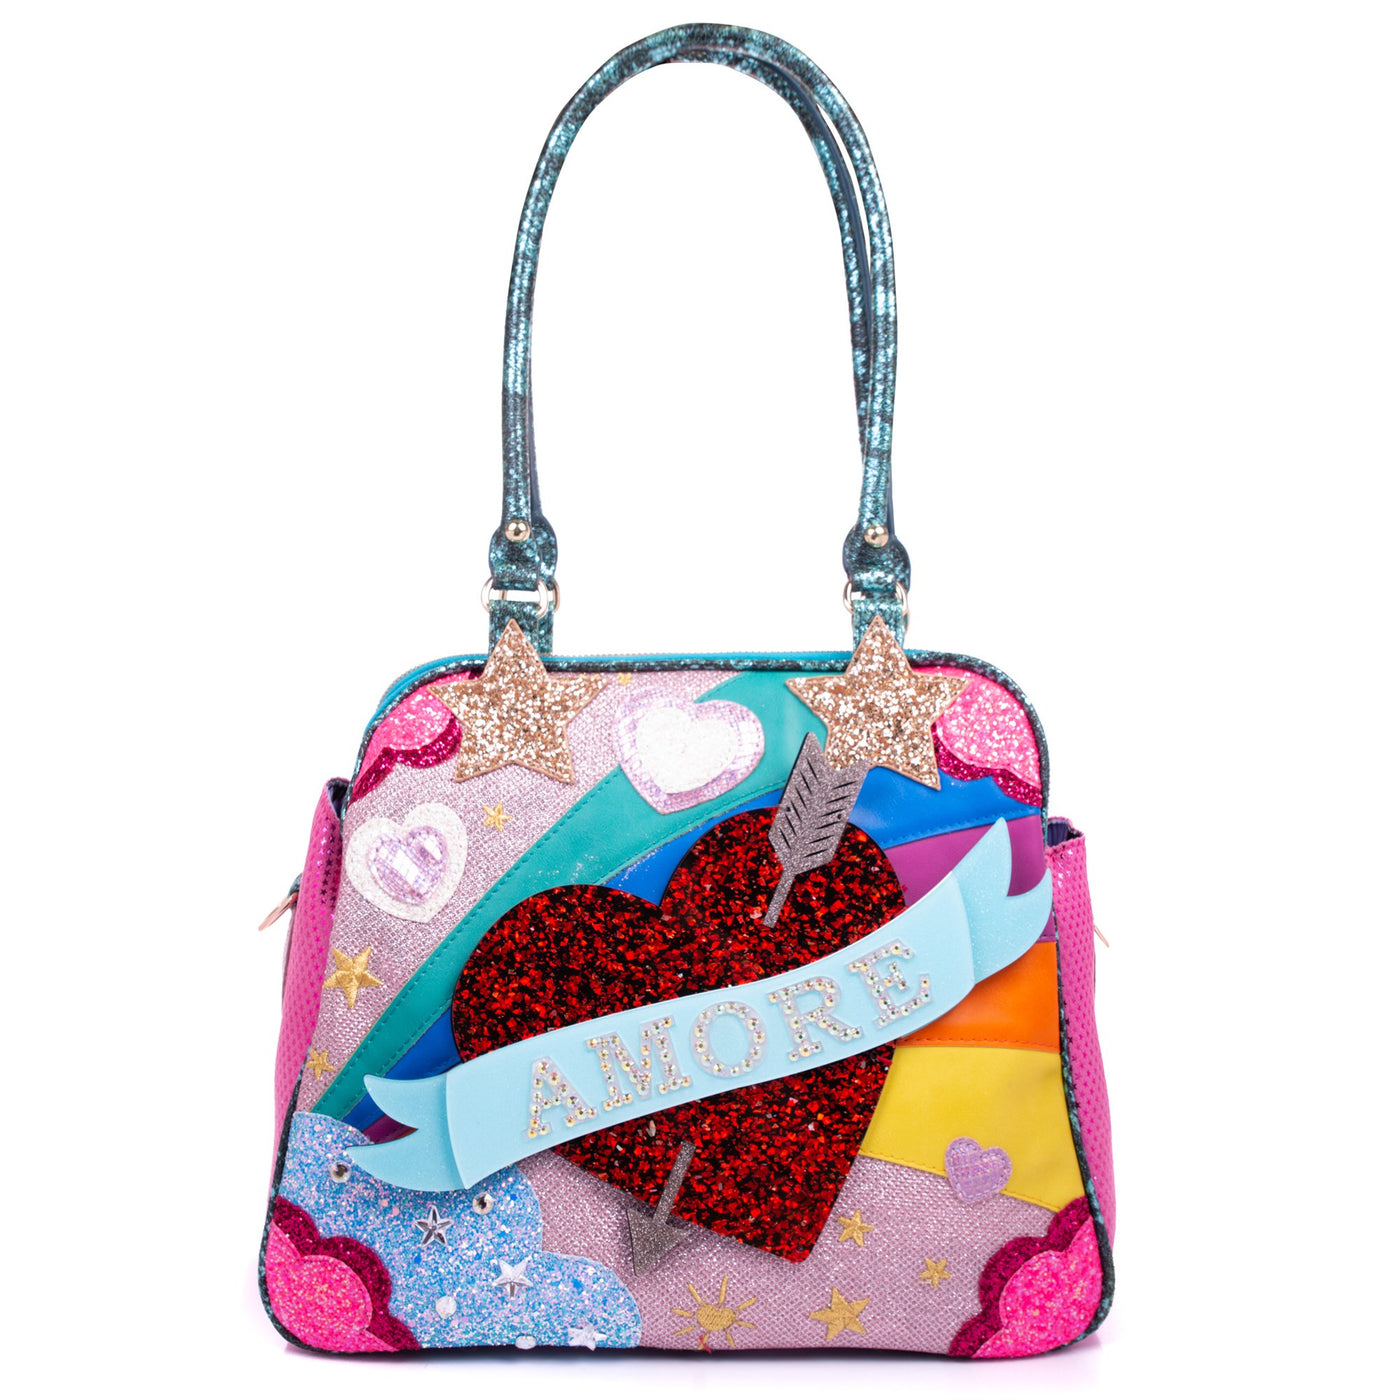 Irregular Choice Handbag Amore Pink